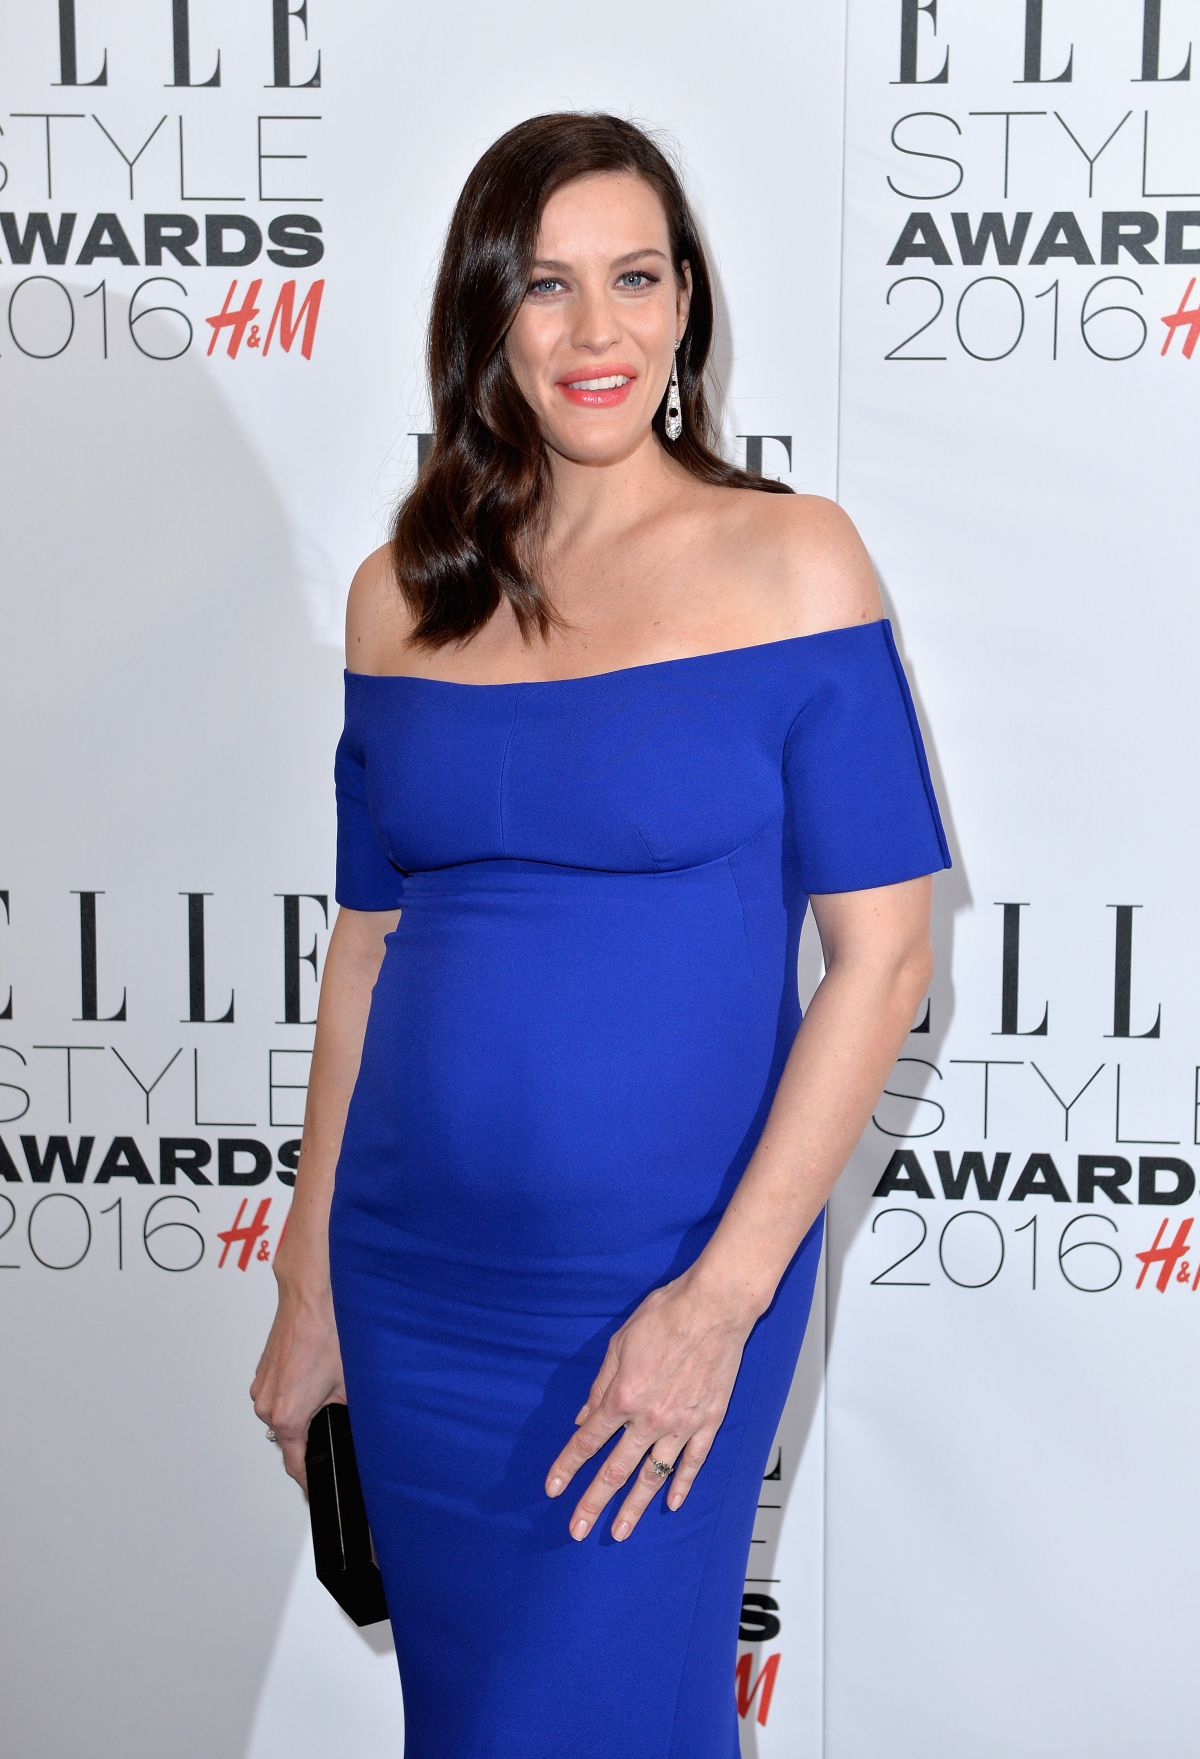 Groovy Pregnant Liv Tyler At Elle Style Awards In London 02 23 2016 Short Hairstyles Gunalazisus